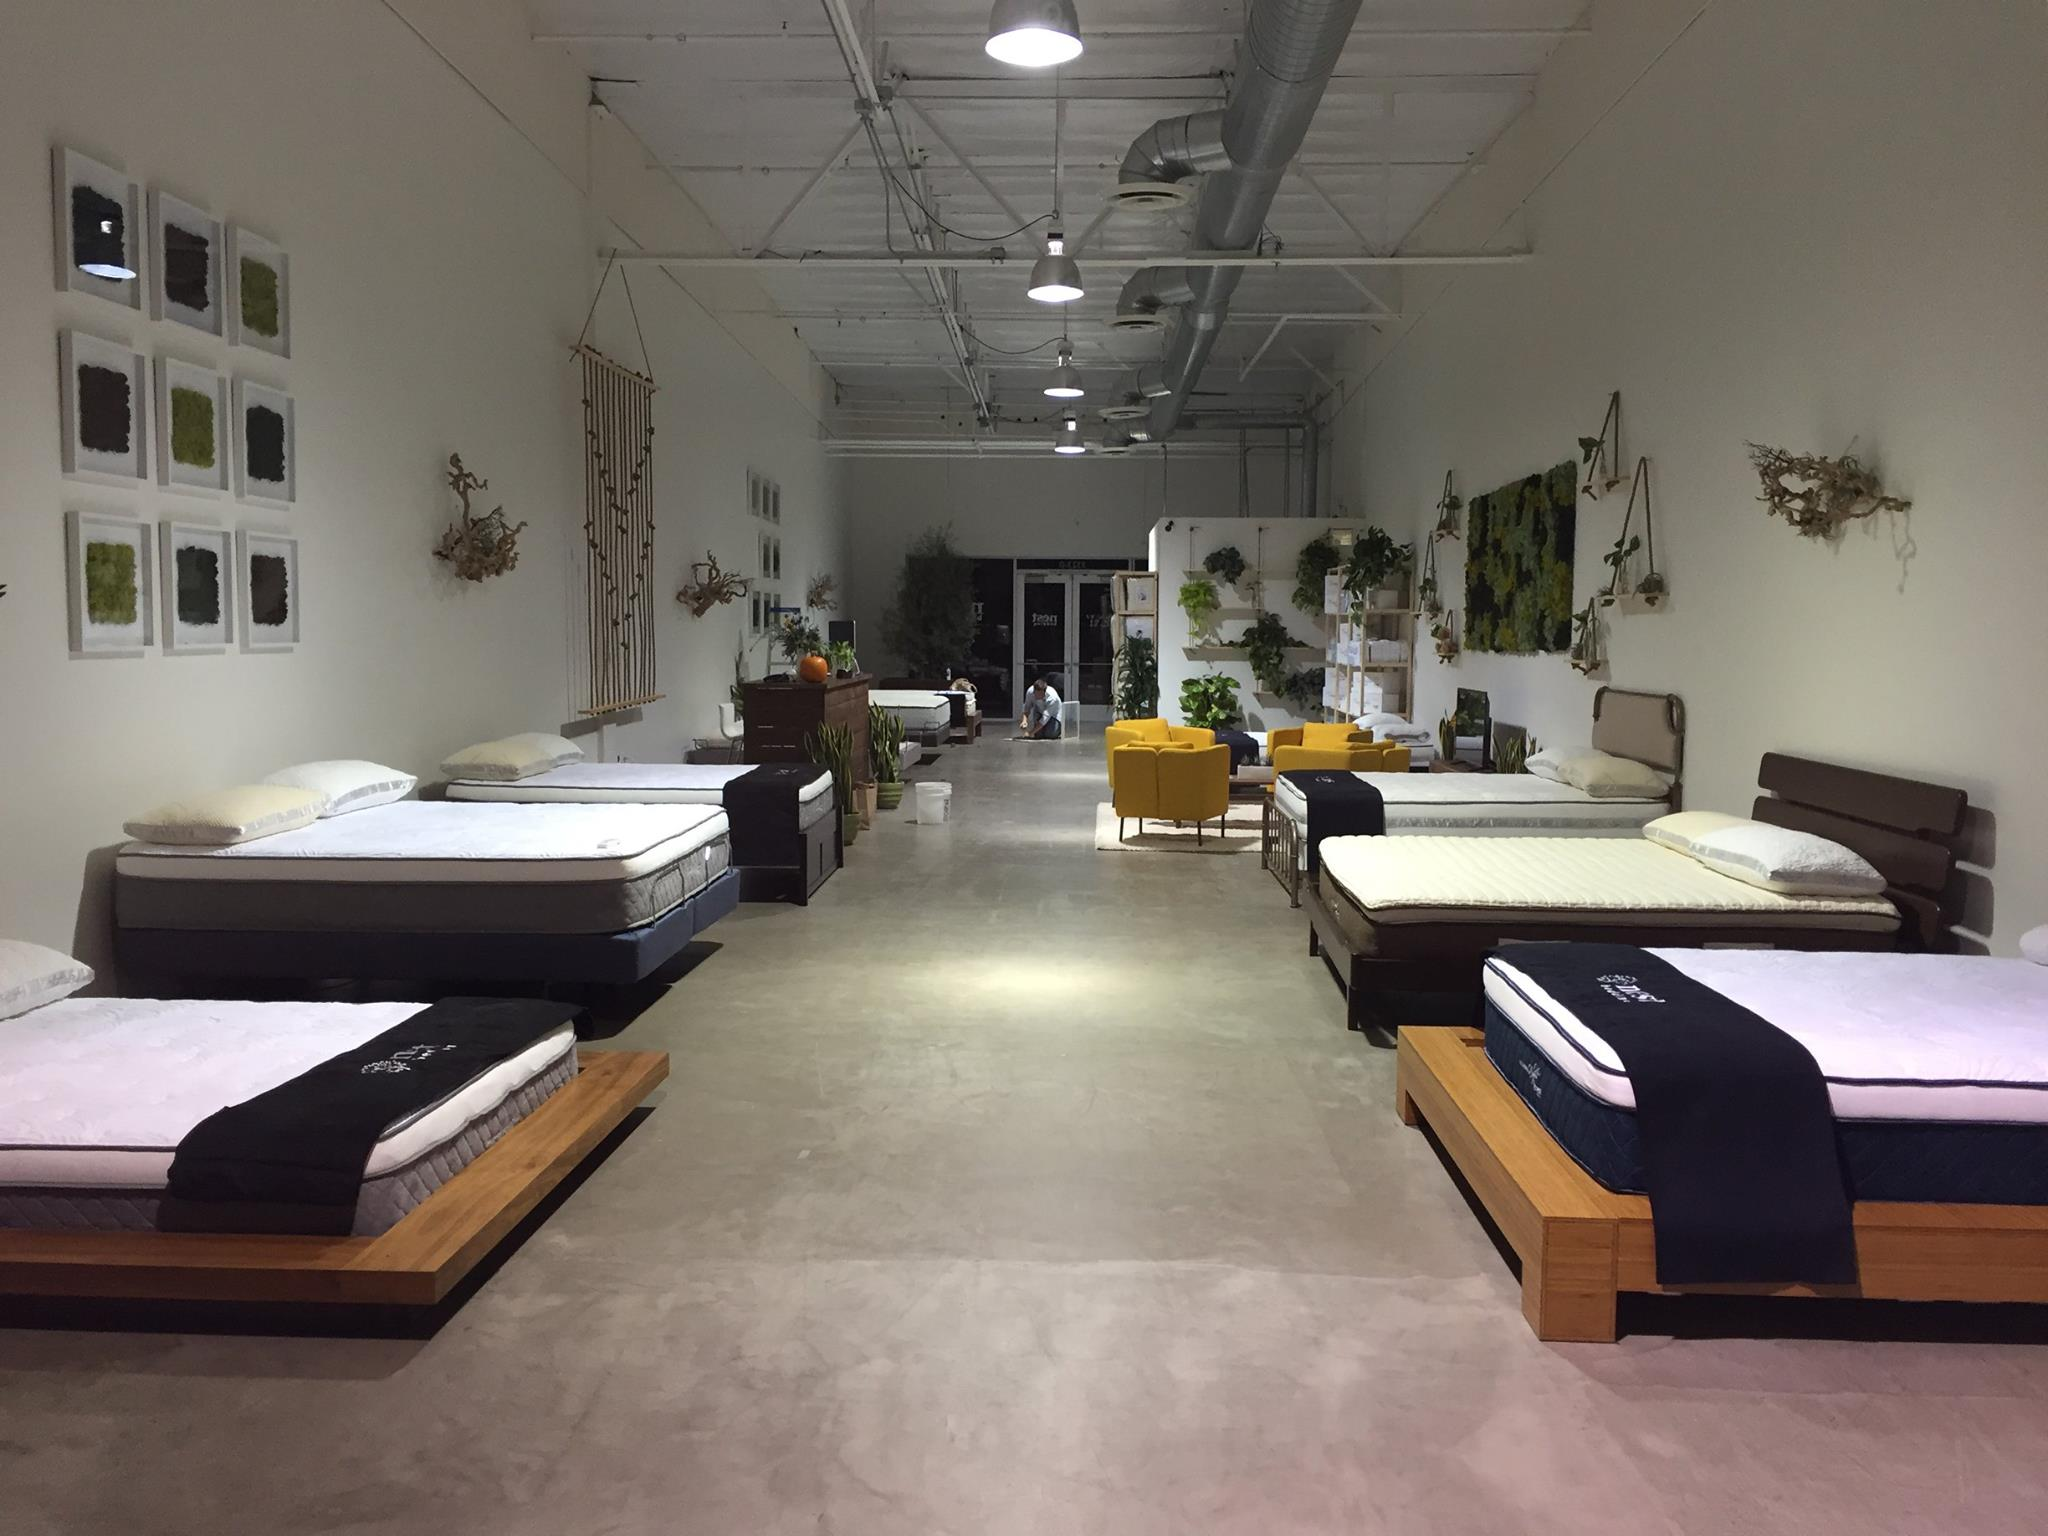 A look inside Nest Bedding's Costa Mesa retail location.